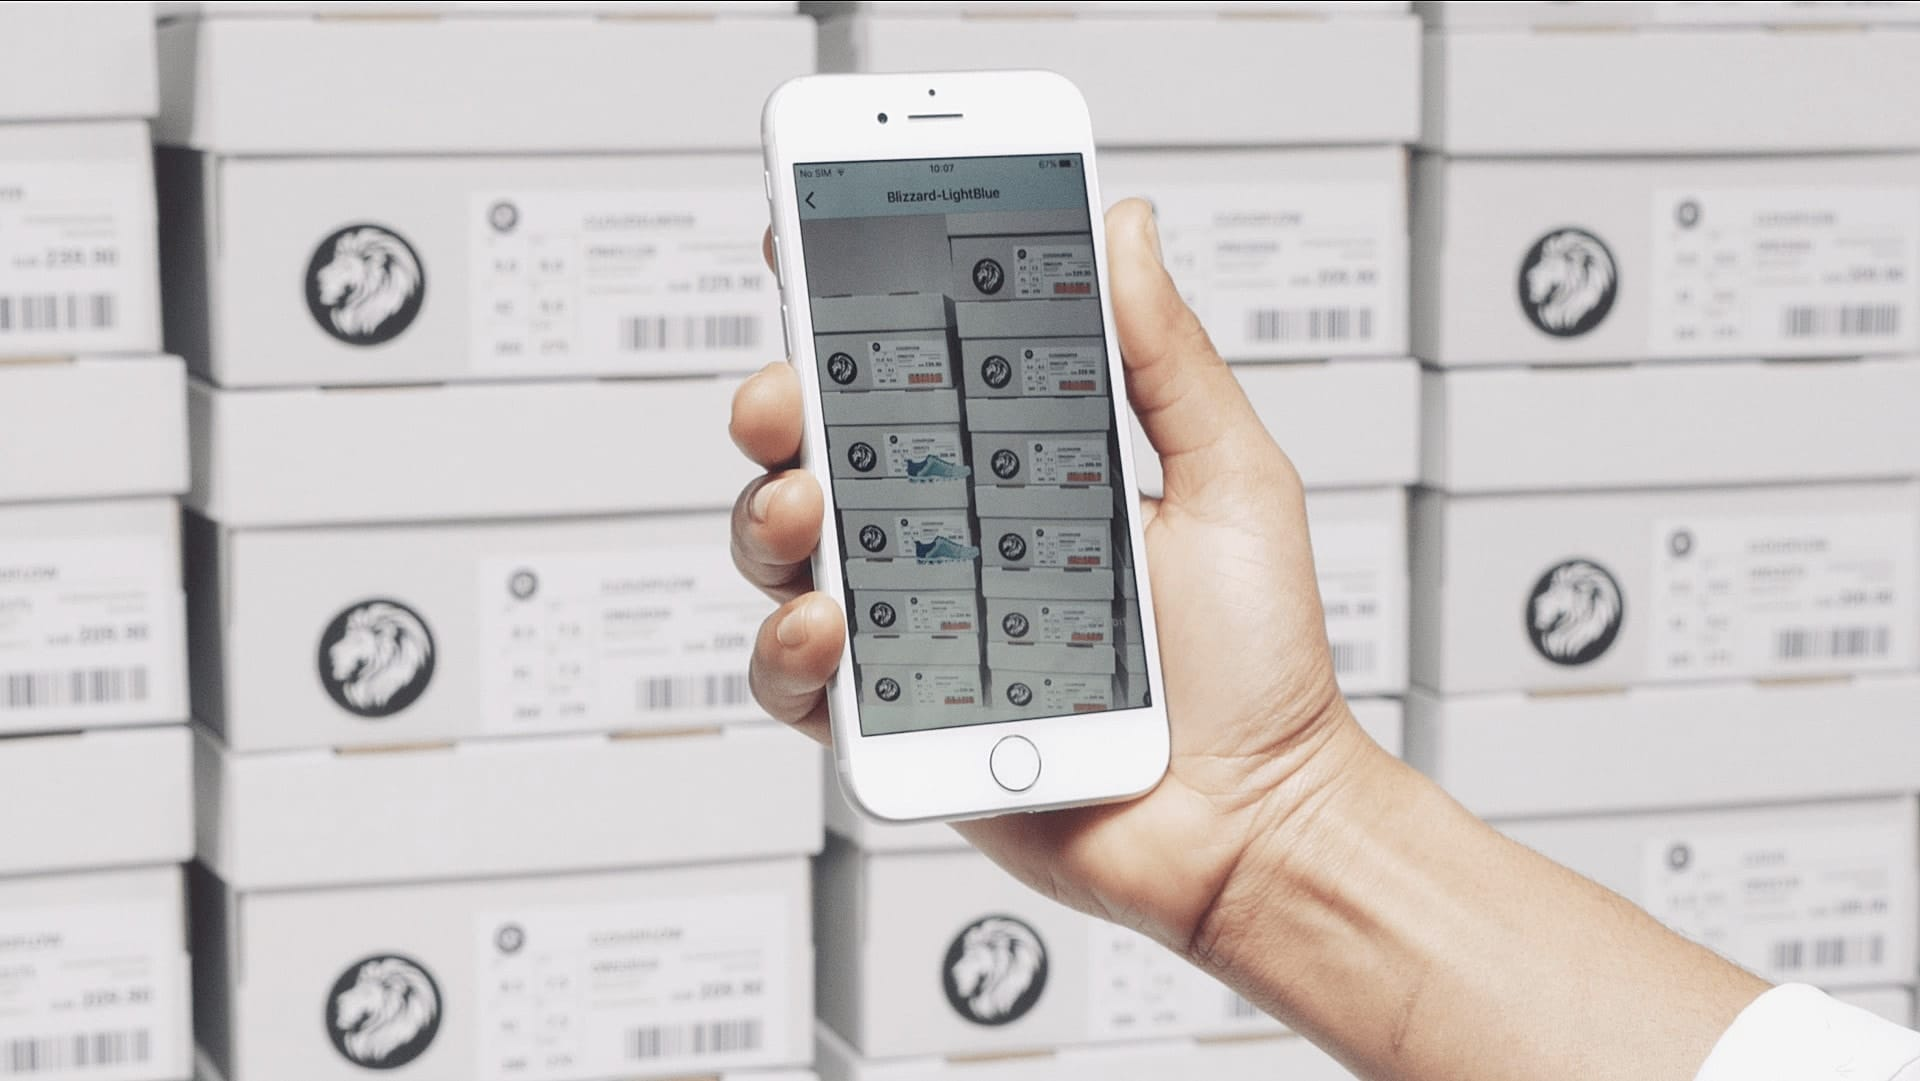 scanning barcodes with iphone